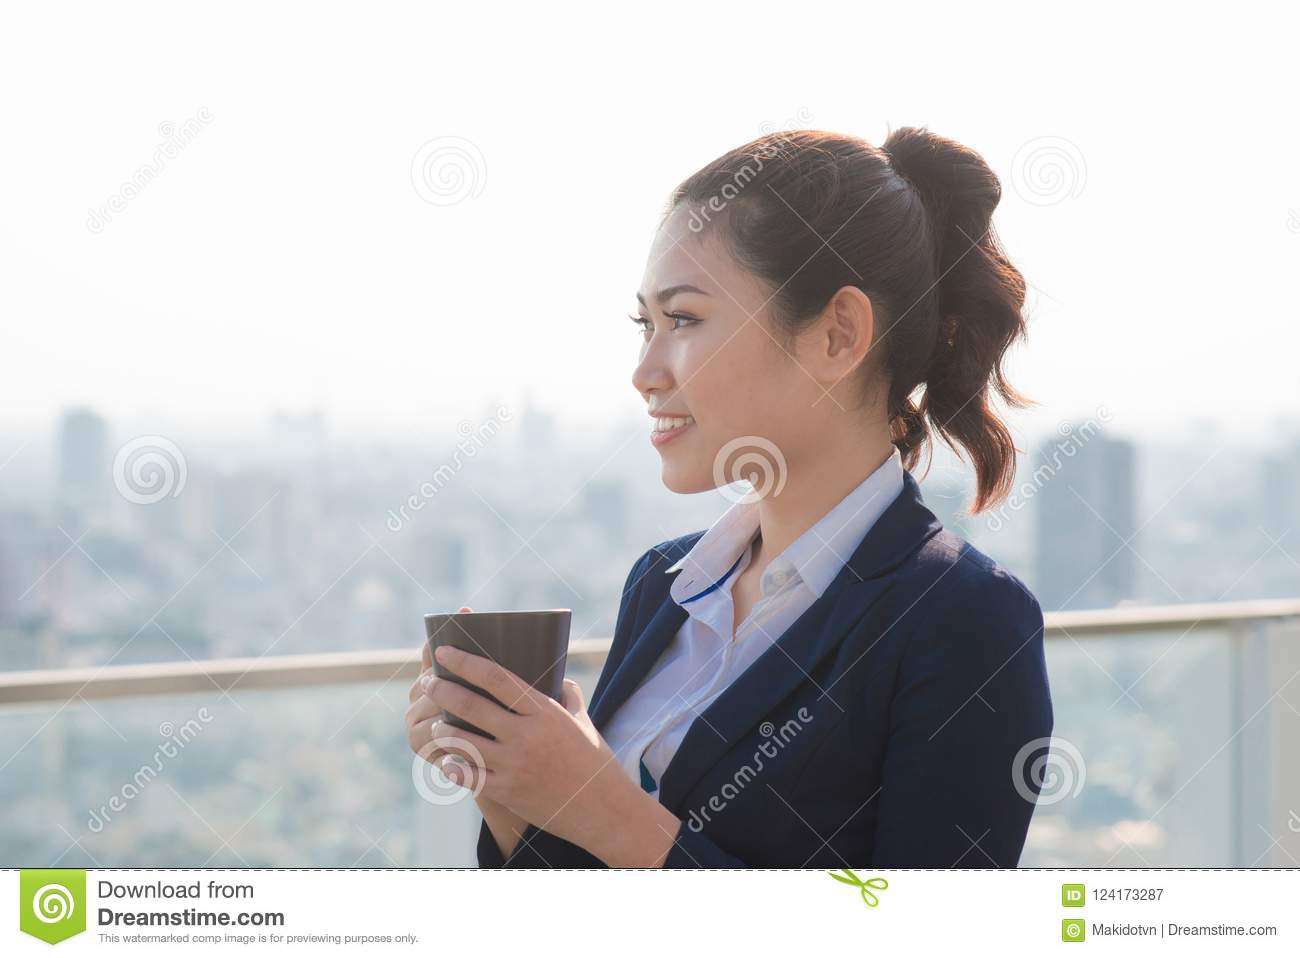 Lawyer businesswoman professional walking outdoors drinking coffee from disposable paper cup. Multiracial Asian / Caucasian